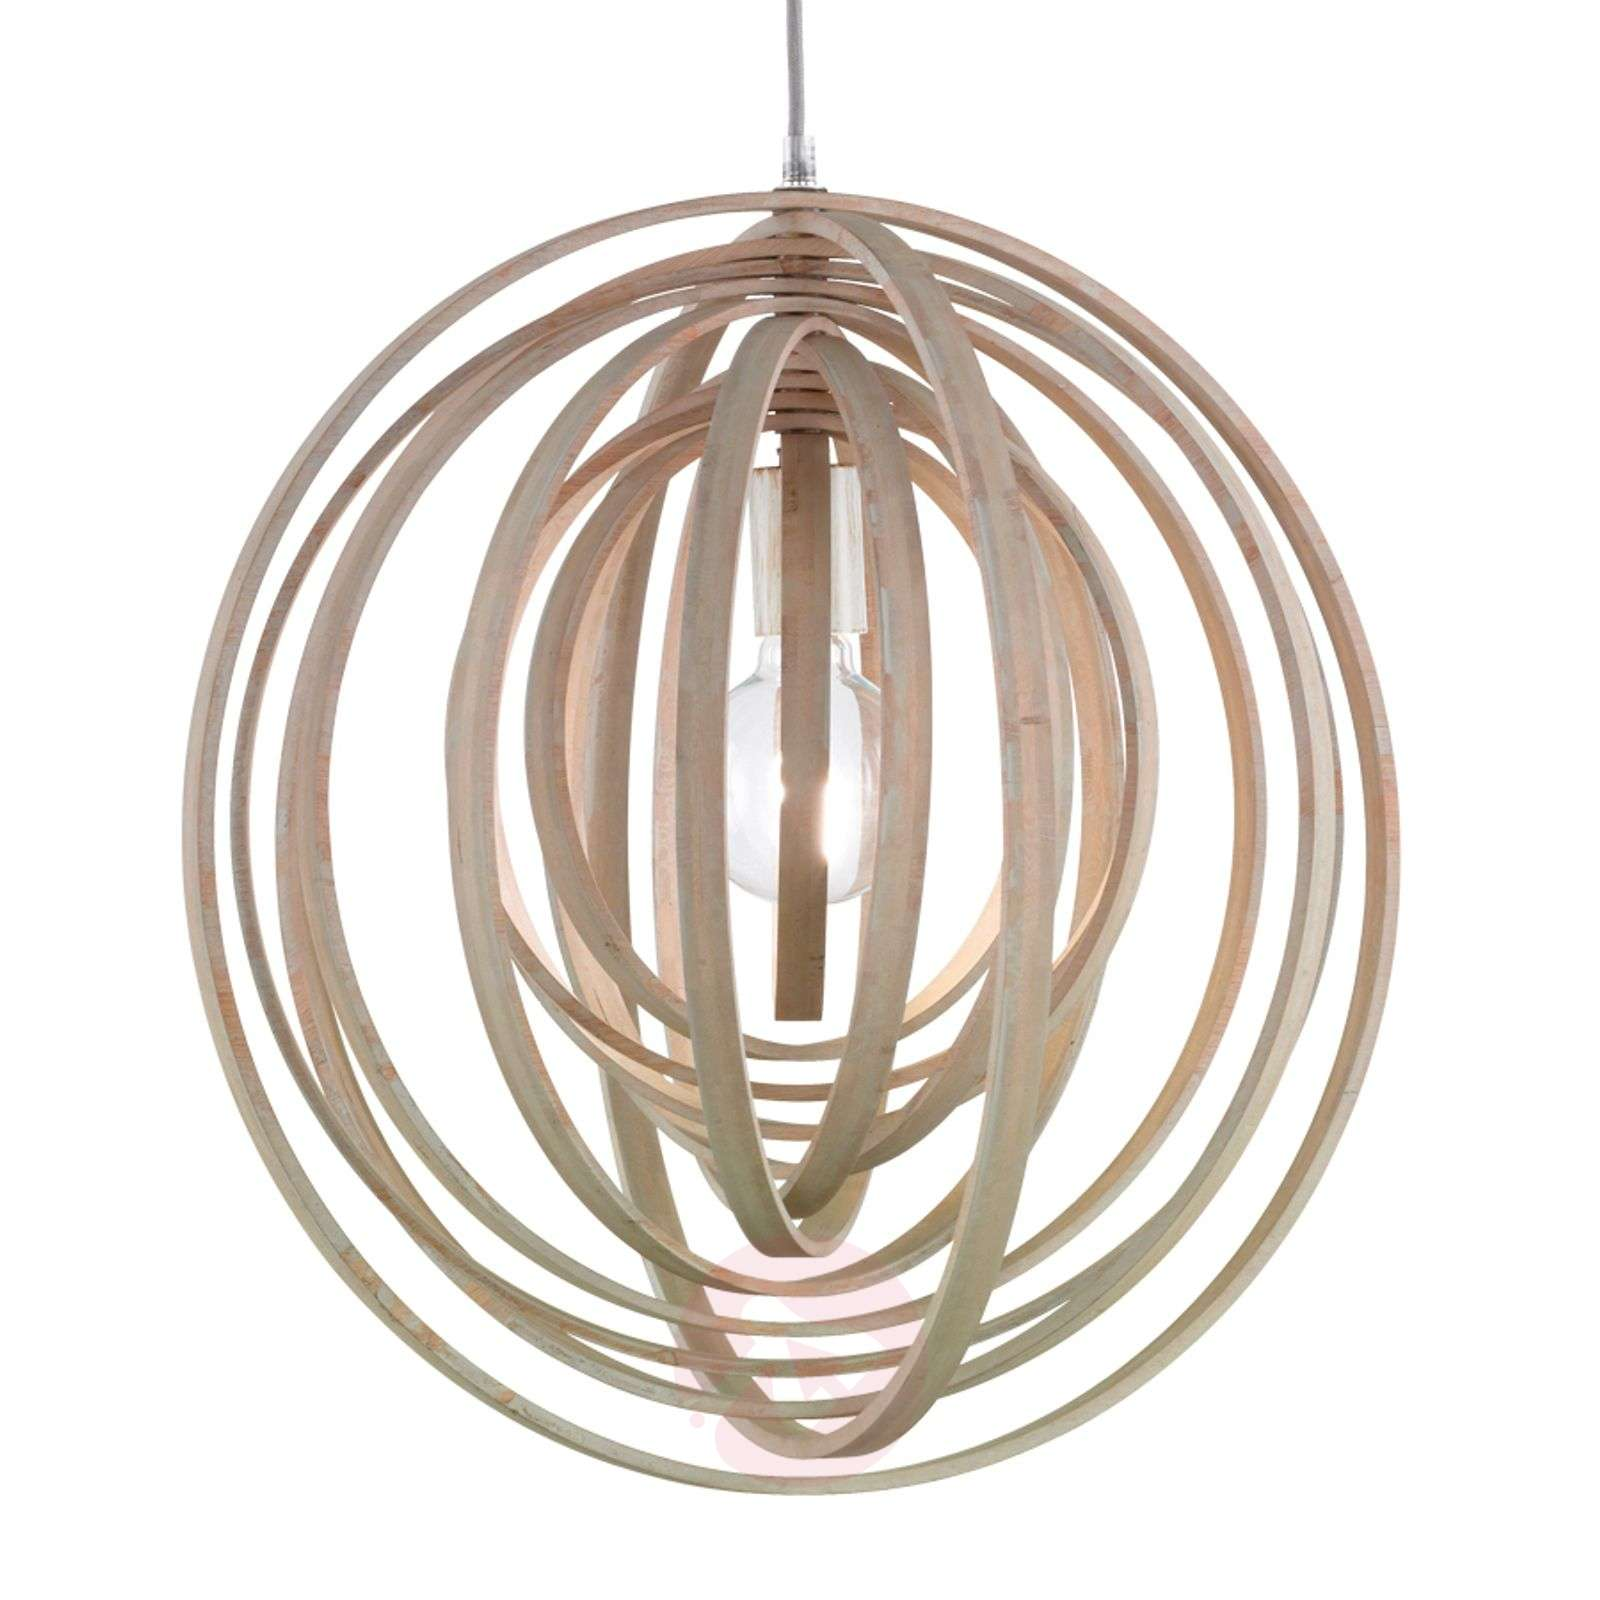 Boolan pendant lamp with a light grey lampshade-9005339-01